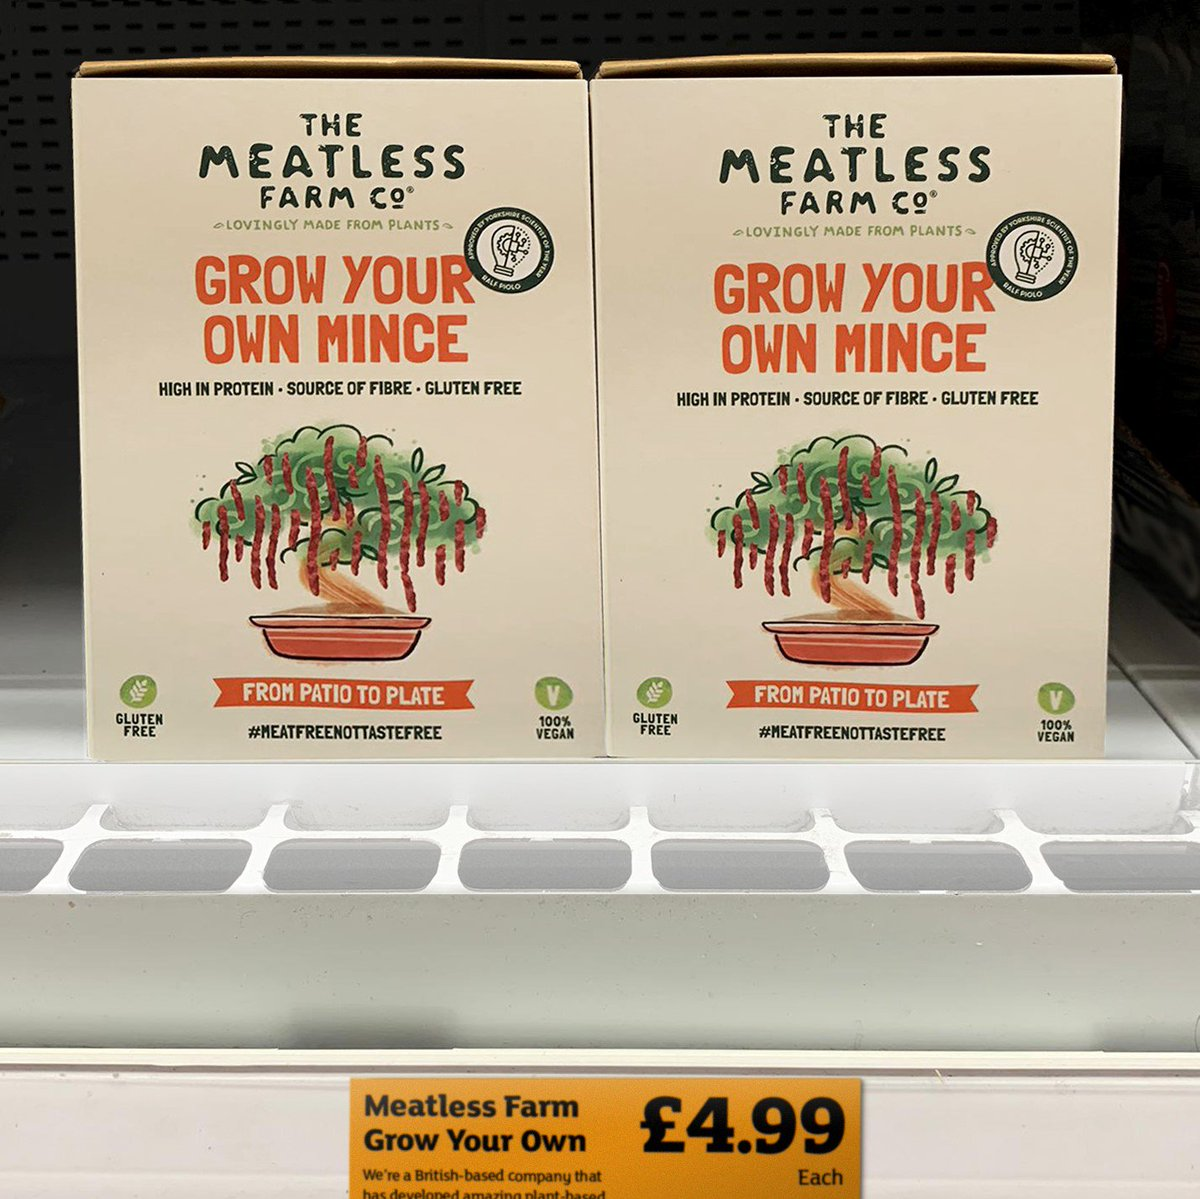 NEW! Grow Your Own Mince with Meatless Farm 🌱 We've just launched our ground-breaking product, allowing green-fingered vegetarians, vegans and Britain's 22 million flexitarians to grow their own #meatless mince at home! 💚 Find out more: http://www.meatlessfarm.com/from-patio-to-plate-grow-your-own-meat-free-mince… #growyourownmince